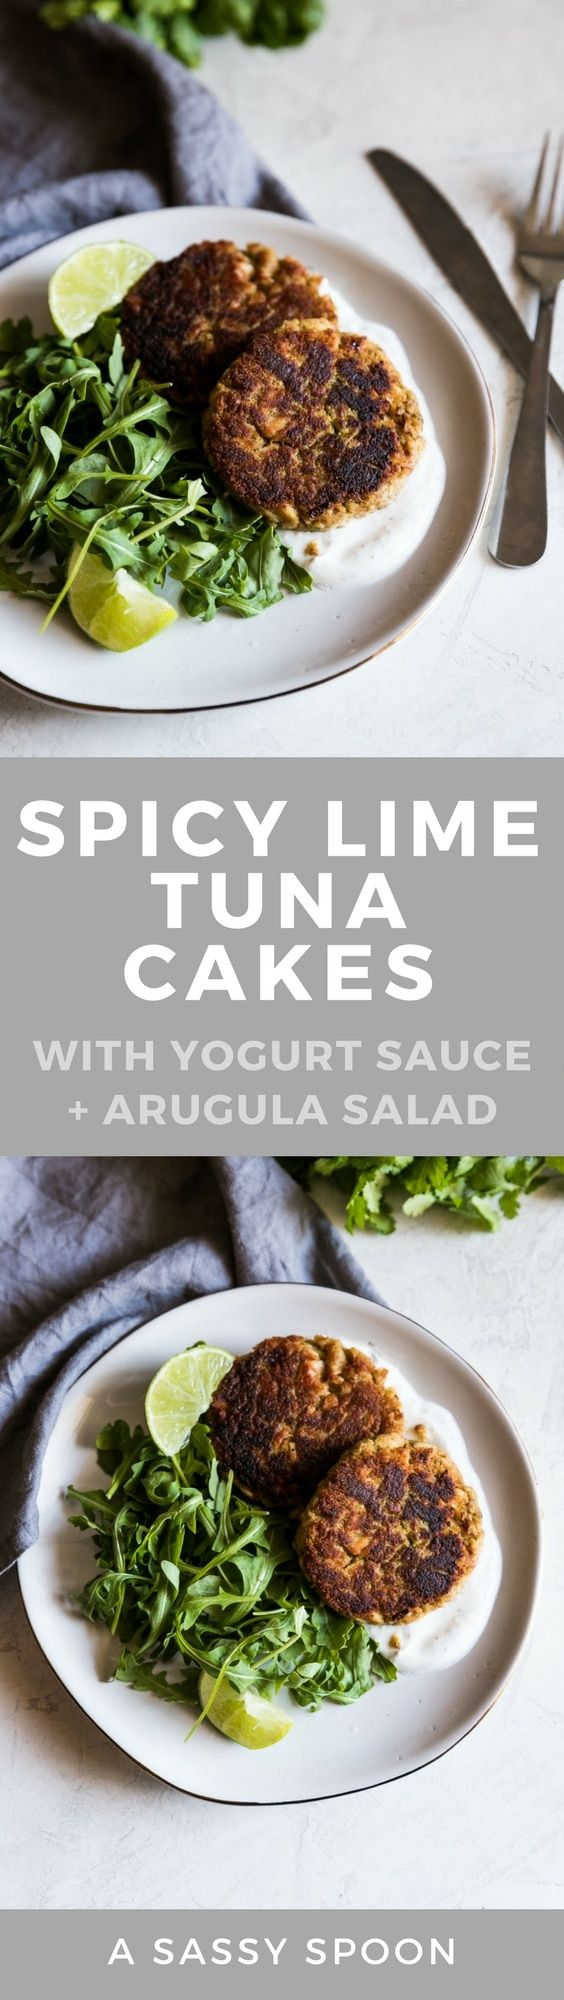 A delicious way to enjoy canned tuna! These spicy lime tuna cakes are made with garlic, onions, chili powder, fresh lime juice then served with a simple yogurt sauce and arugula salad. via @asassyspoon